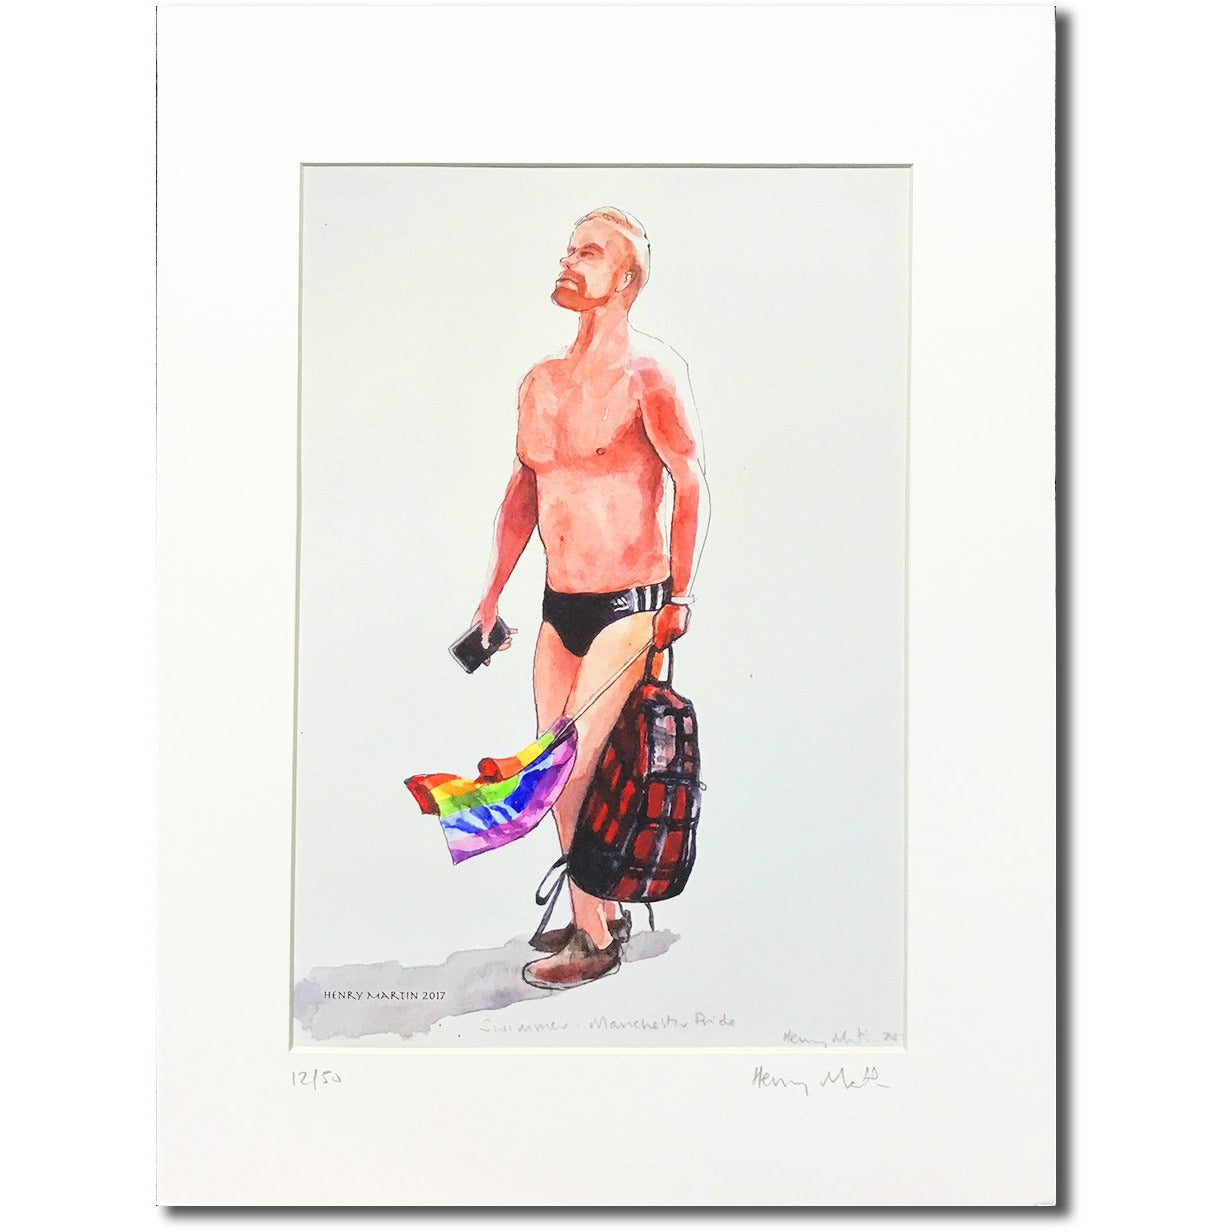 Swimmer by Henry Martin - signed and mounted limited edition A4 print #12/50 - Egoiste Gallery